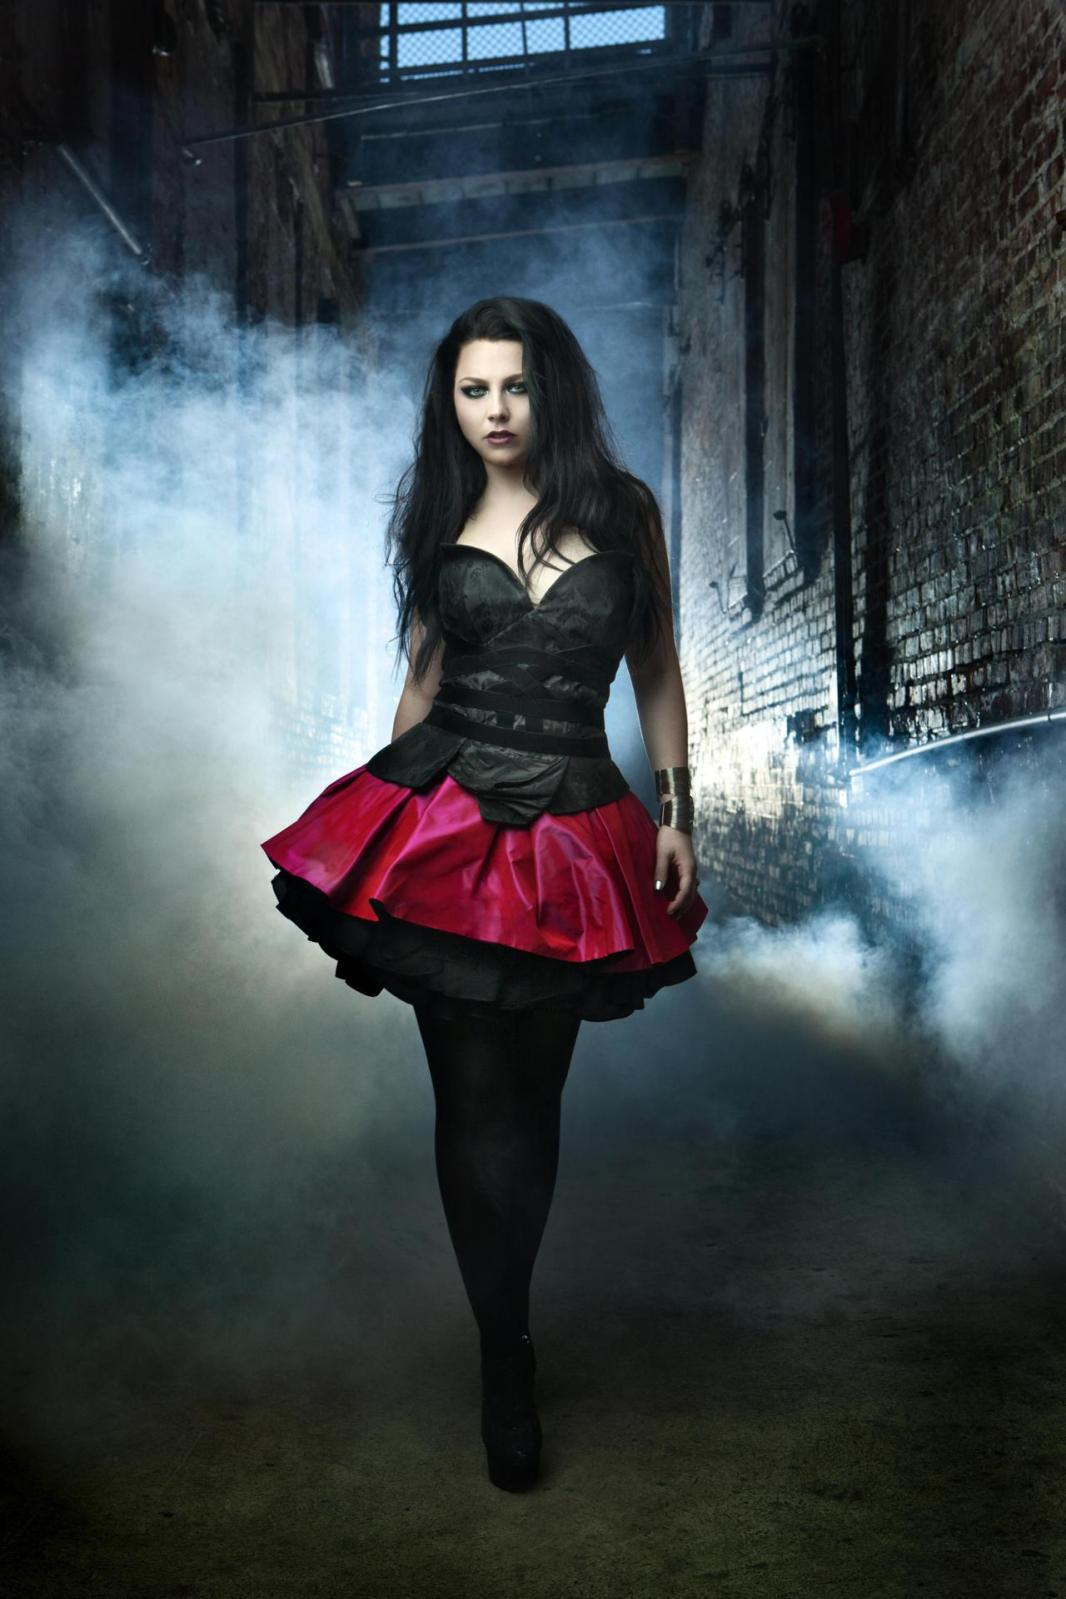 Evanescence Images Amy Lee Hd Wallpaper And Background